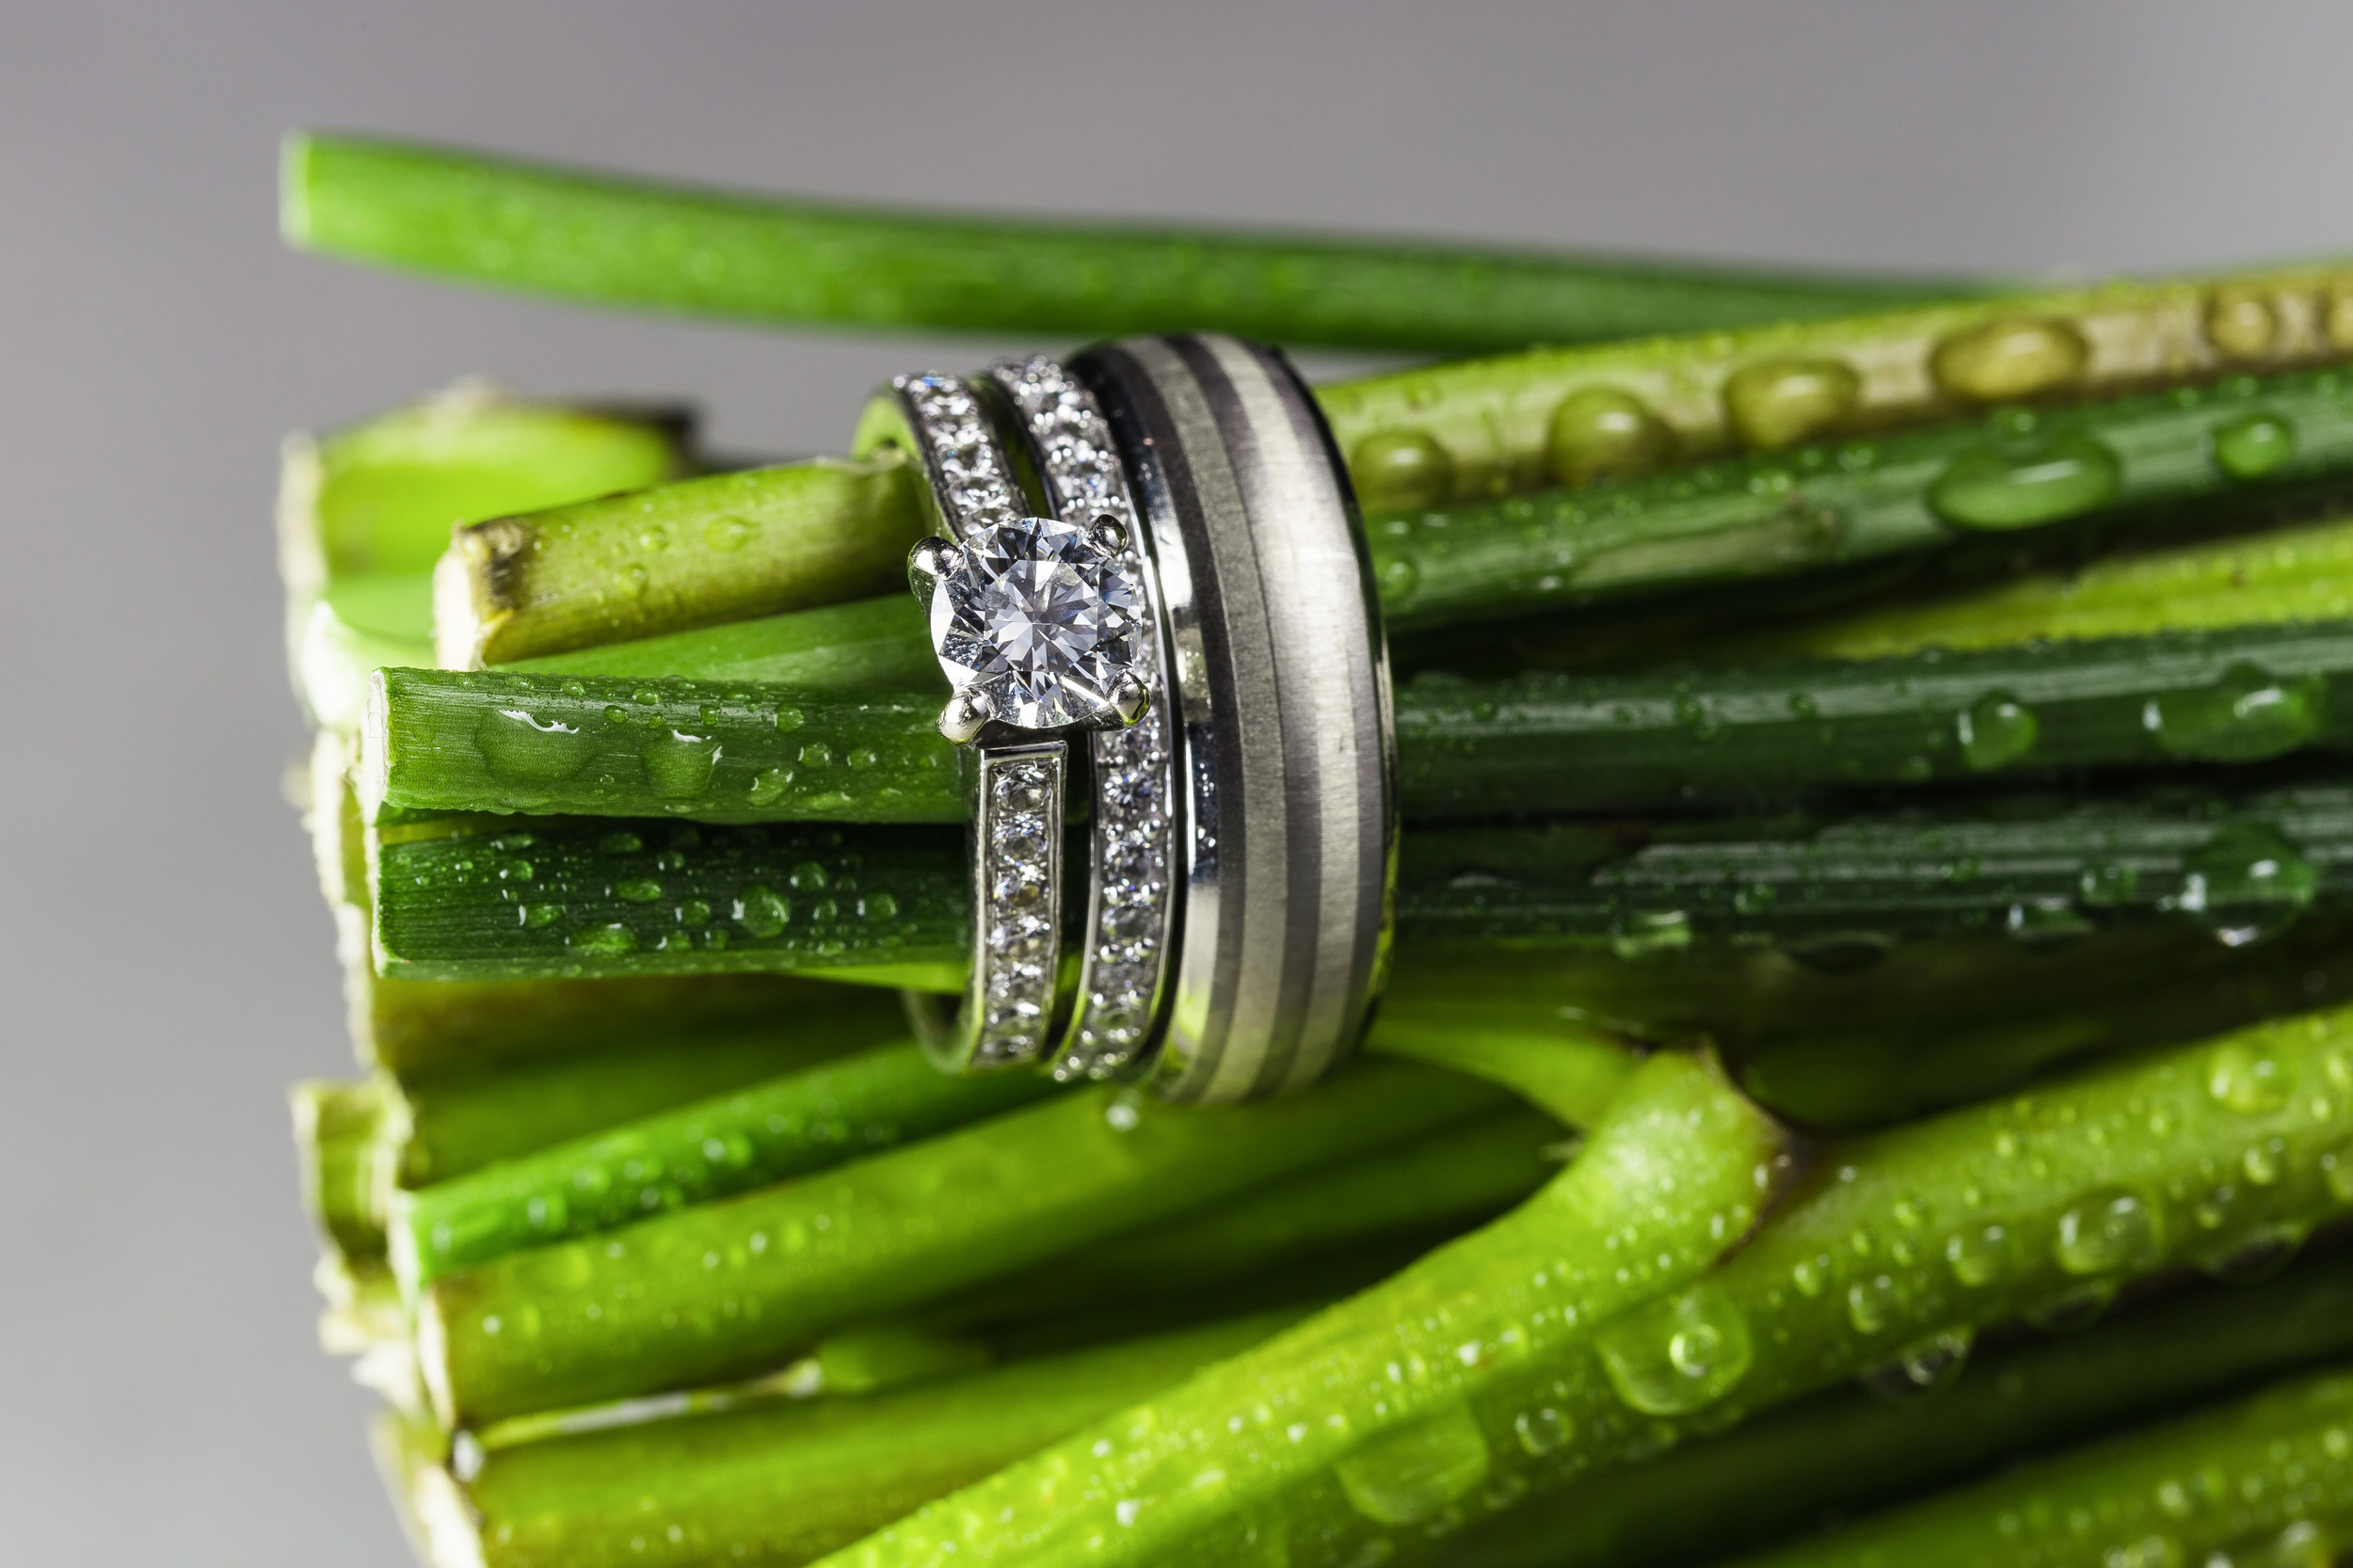 I love shooting details, i take the time too shoot the rings on or with things that mean something too the bride. I put the wedding bands on the brides bouquet